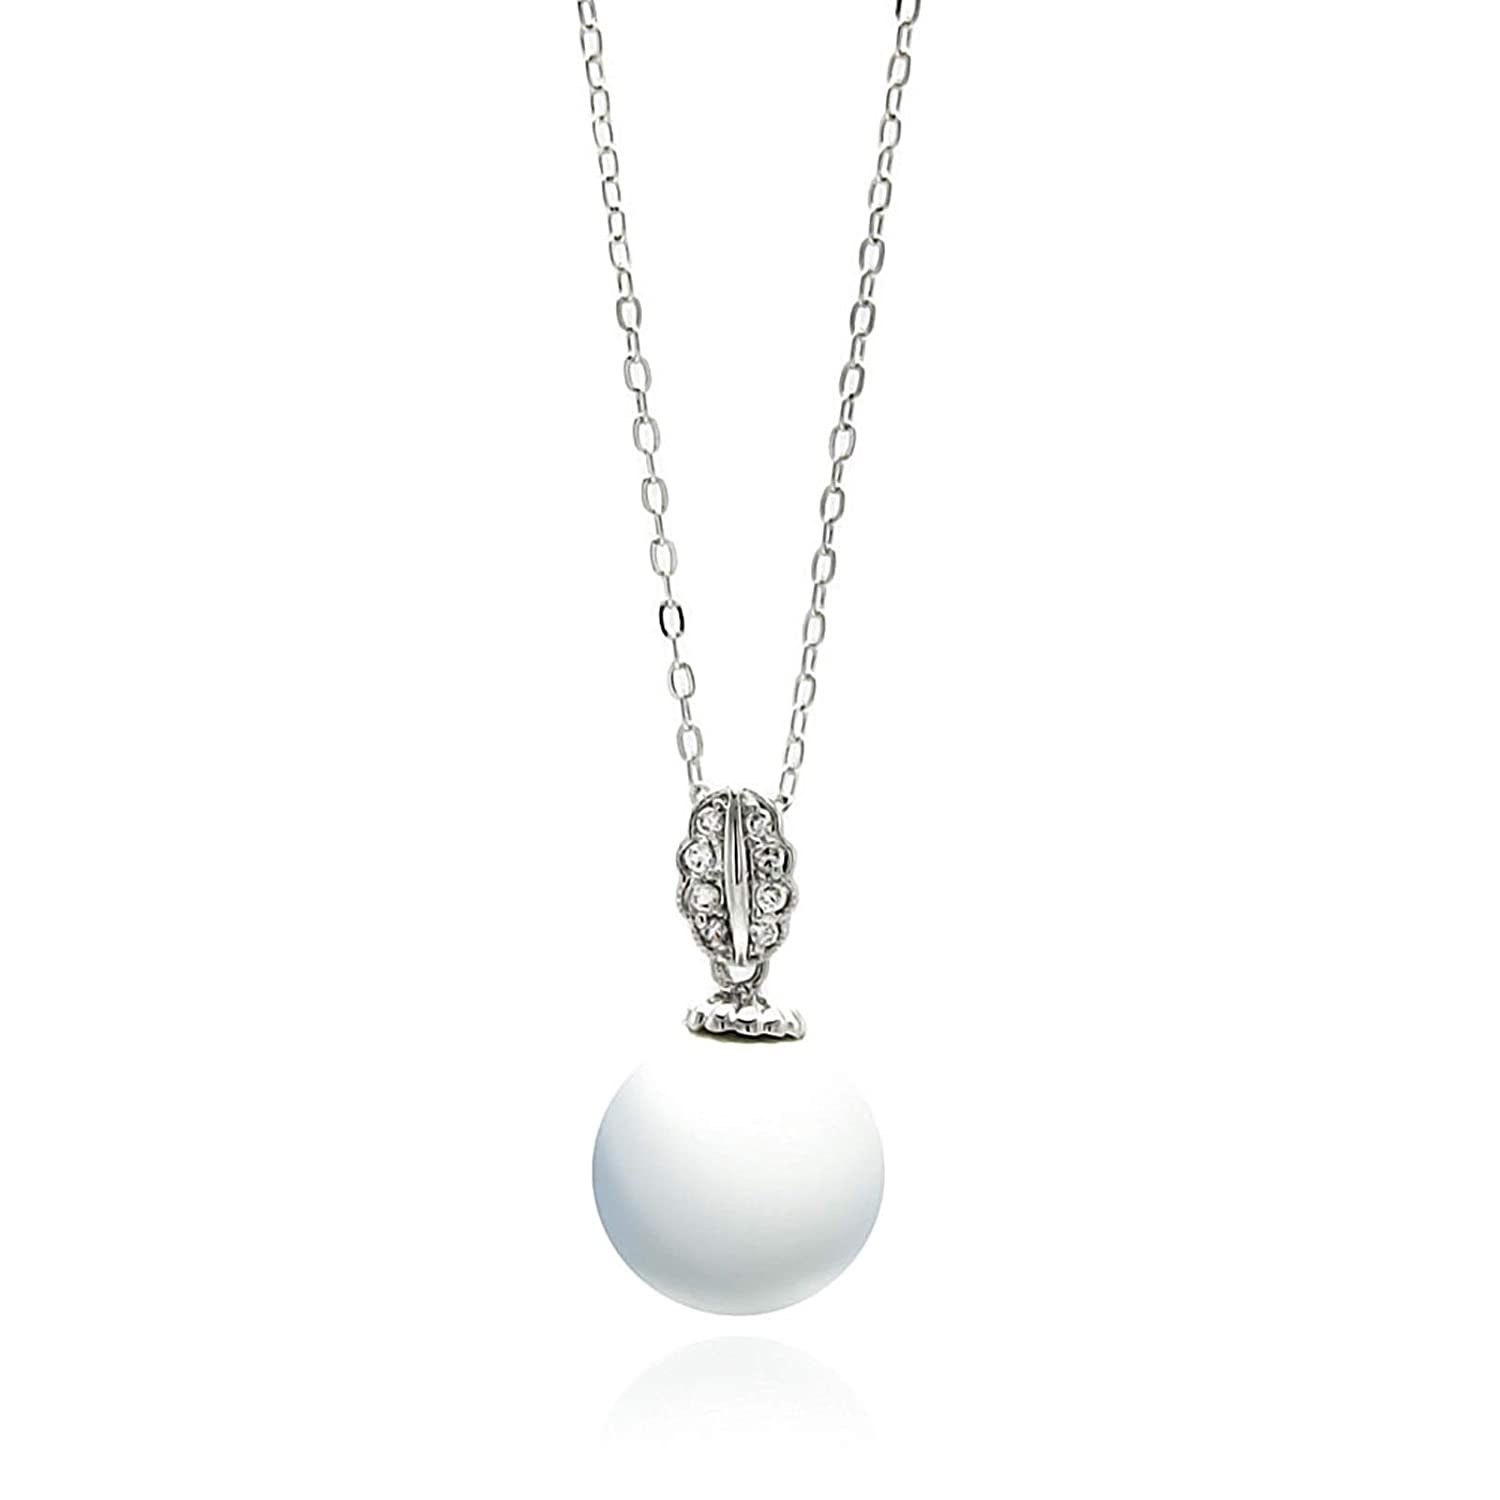 Aienid Brass Cubic Zirconia Pearl Leaf Pendant Necklace for Women 16-18 Inch Adjustable